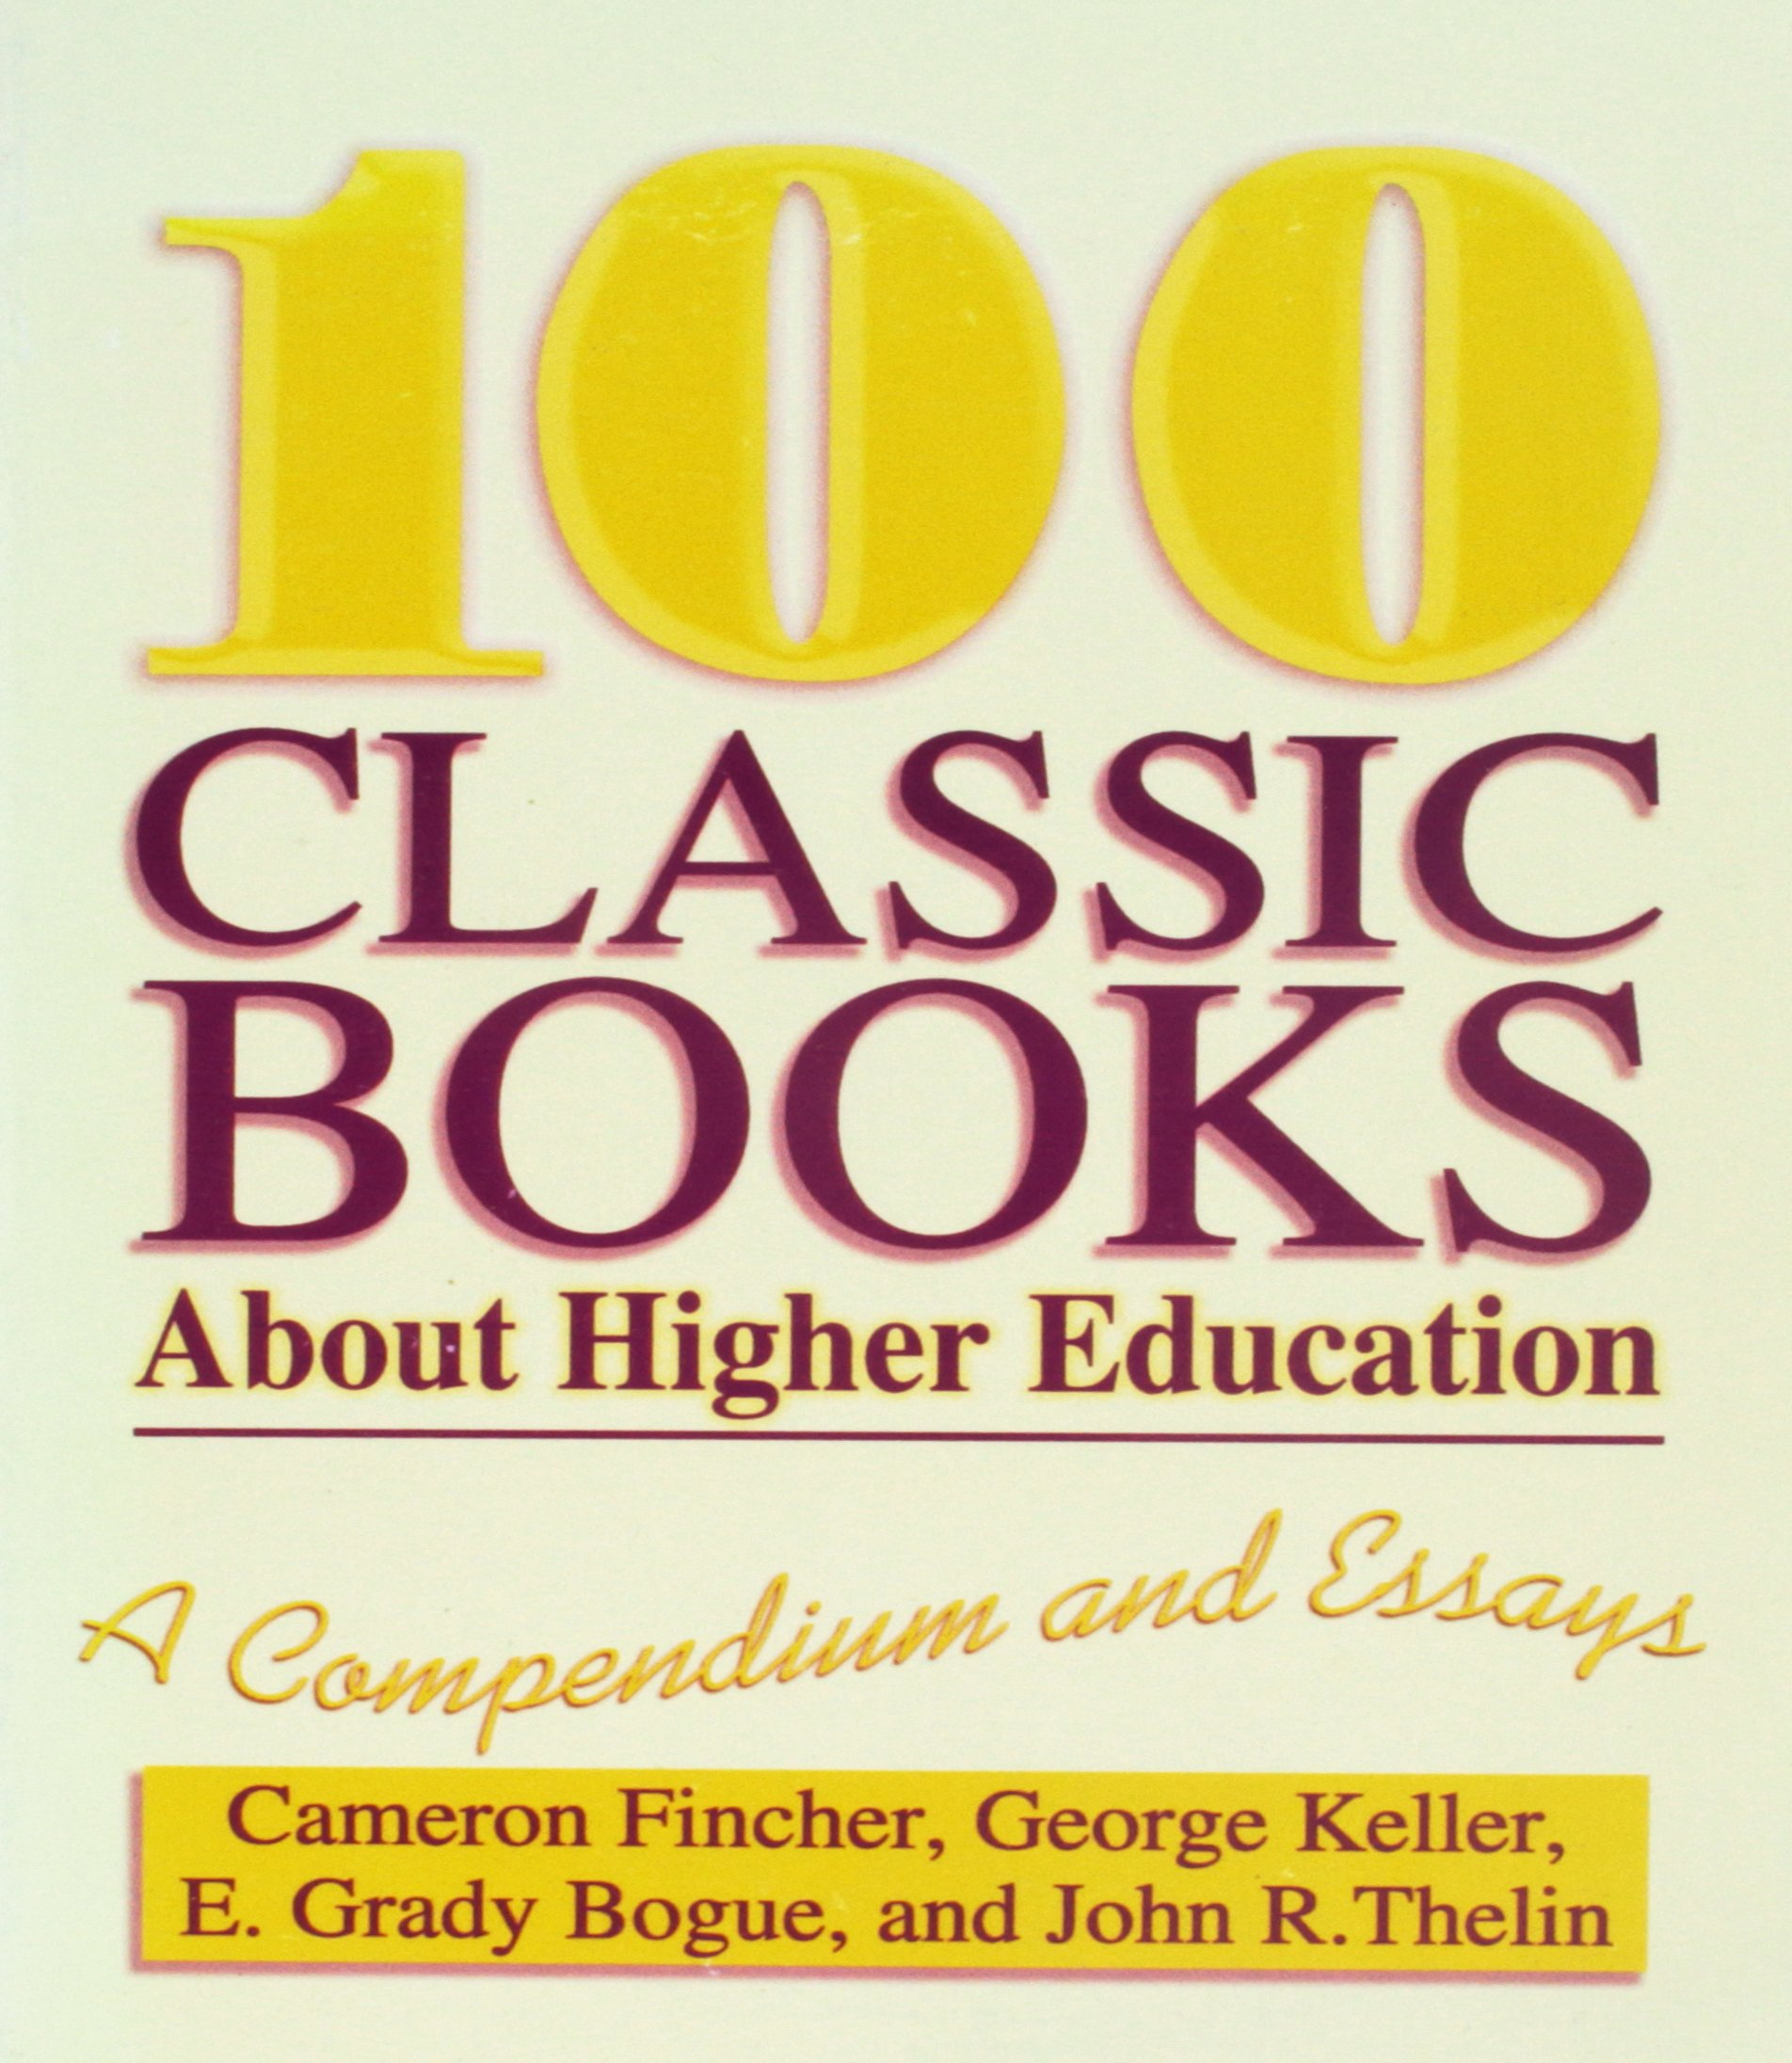 100 Classic Books About Higher Education: A Compendium and Essays